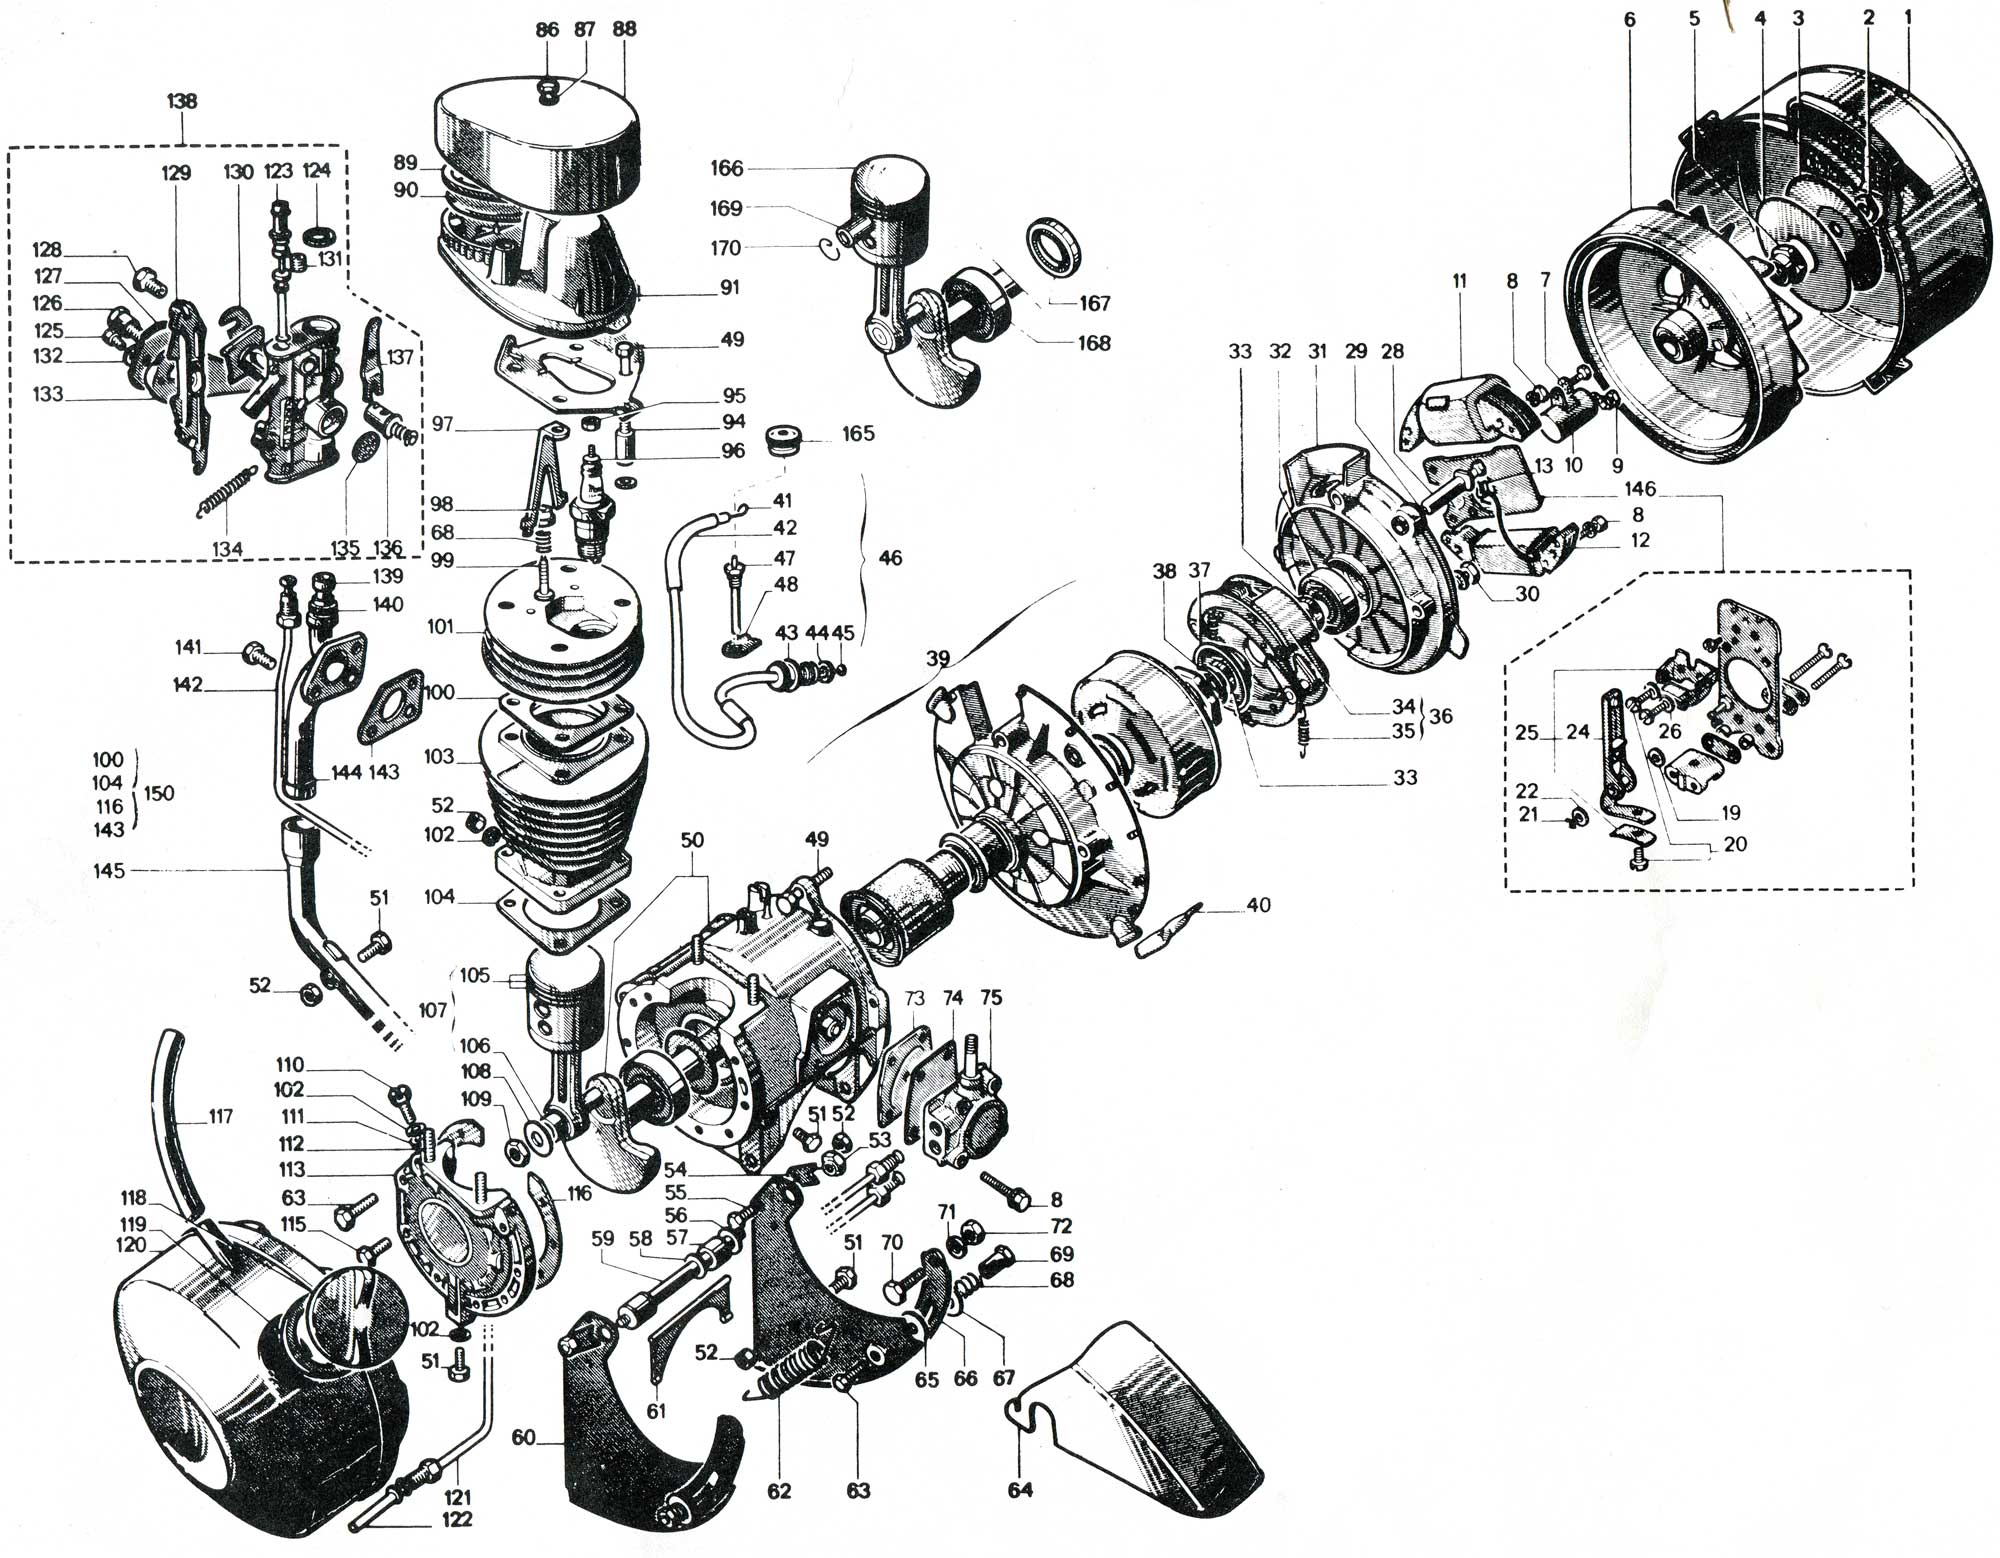 velosolex 3800 wiring diagram